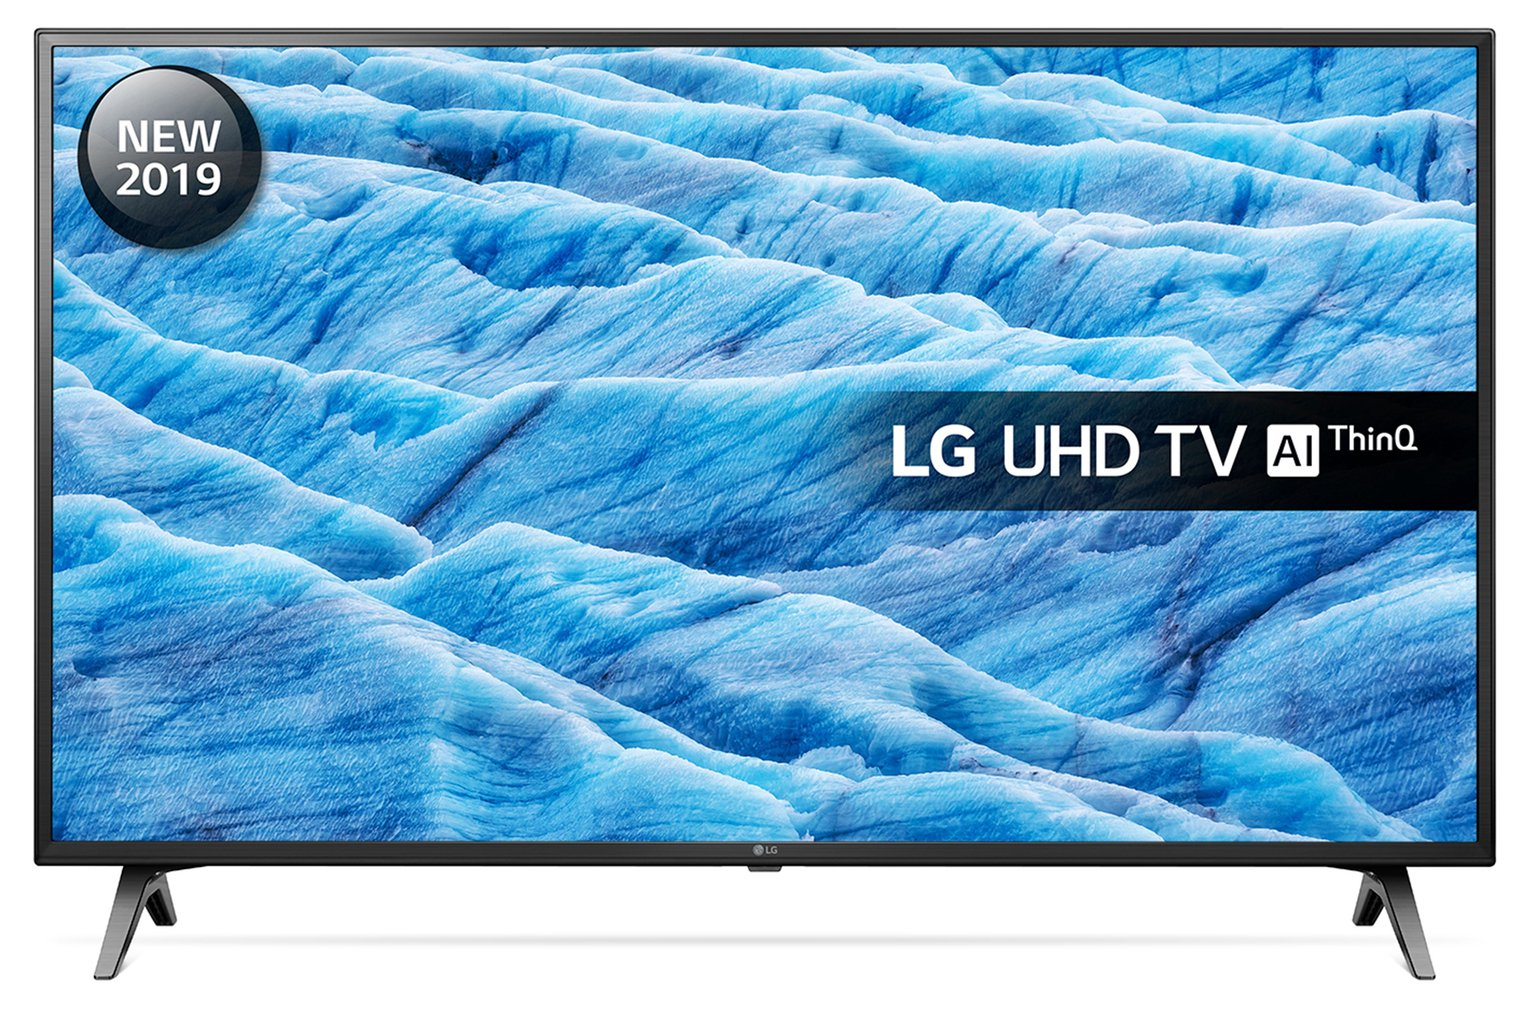 LG 60 INCH 4K HDR With Quad Core (Amazon)